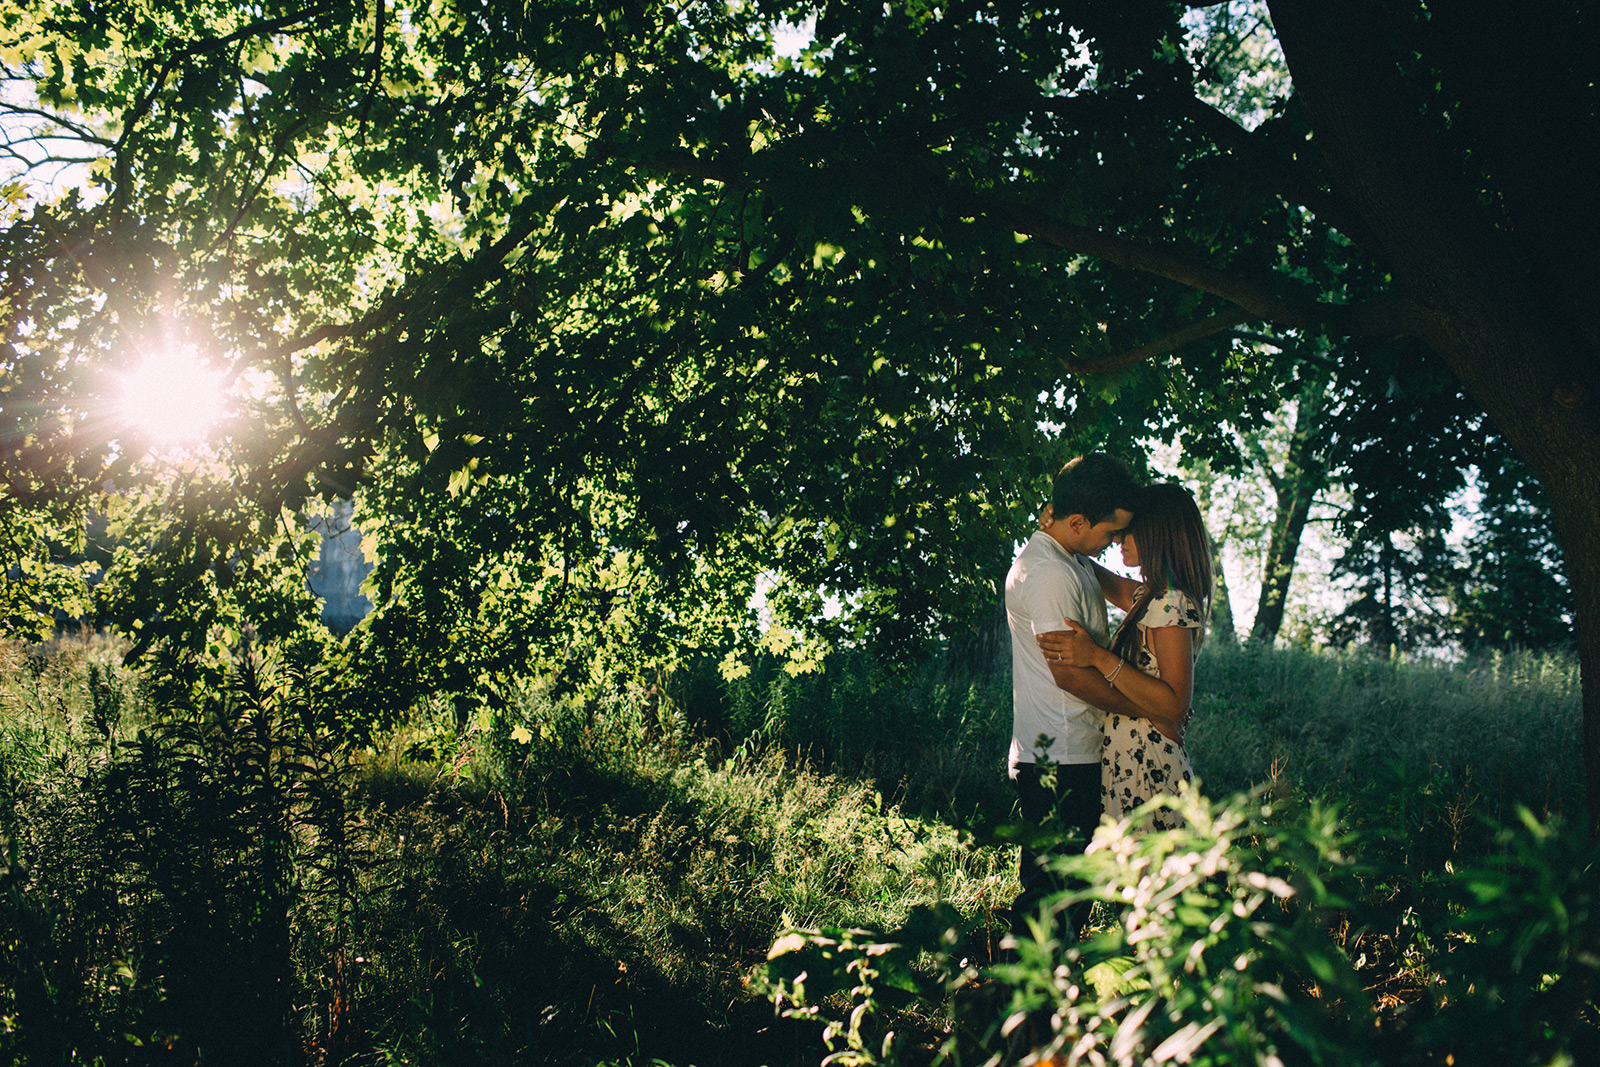 Rural-Ontario-modern-lifestyle-engagement-session-Sam-Wong-Visual-Cravings-AnJ_13